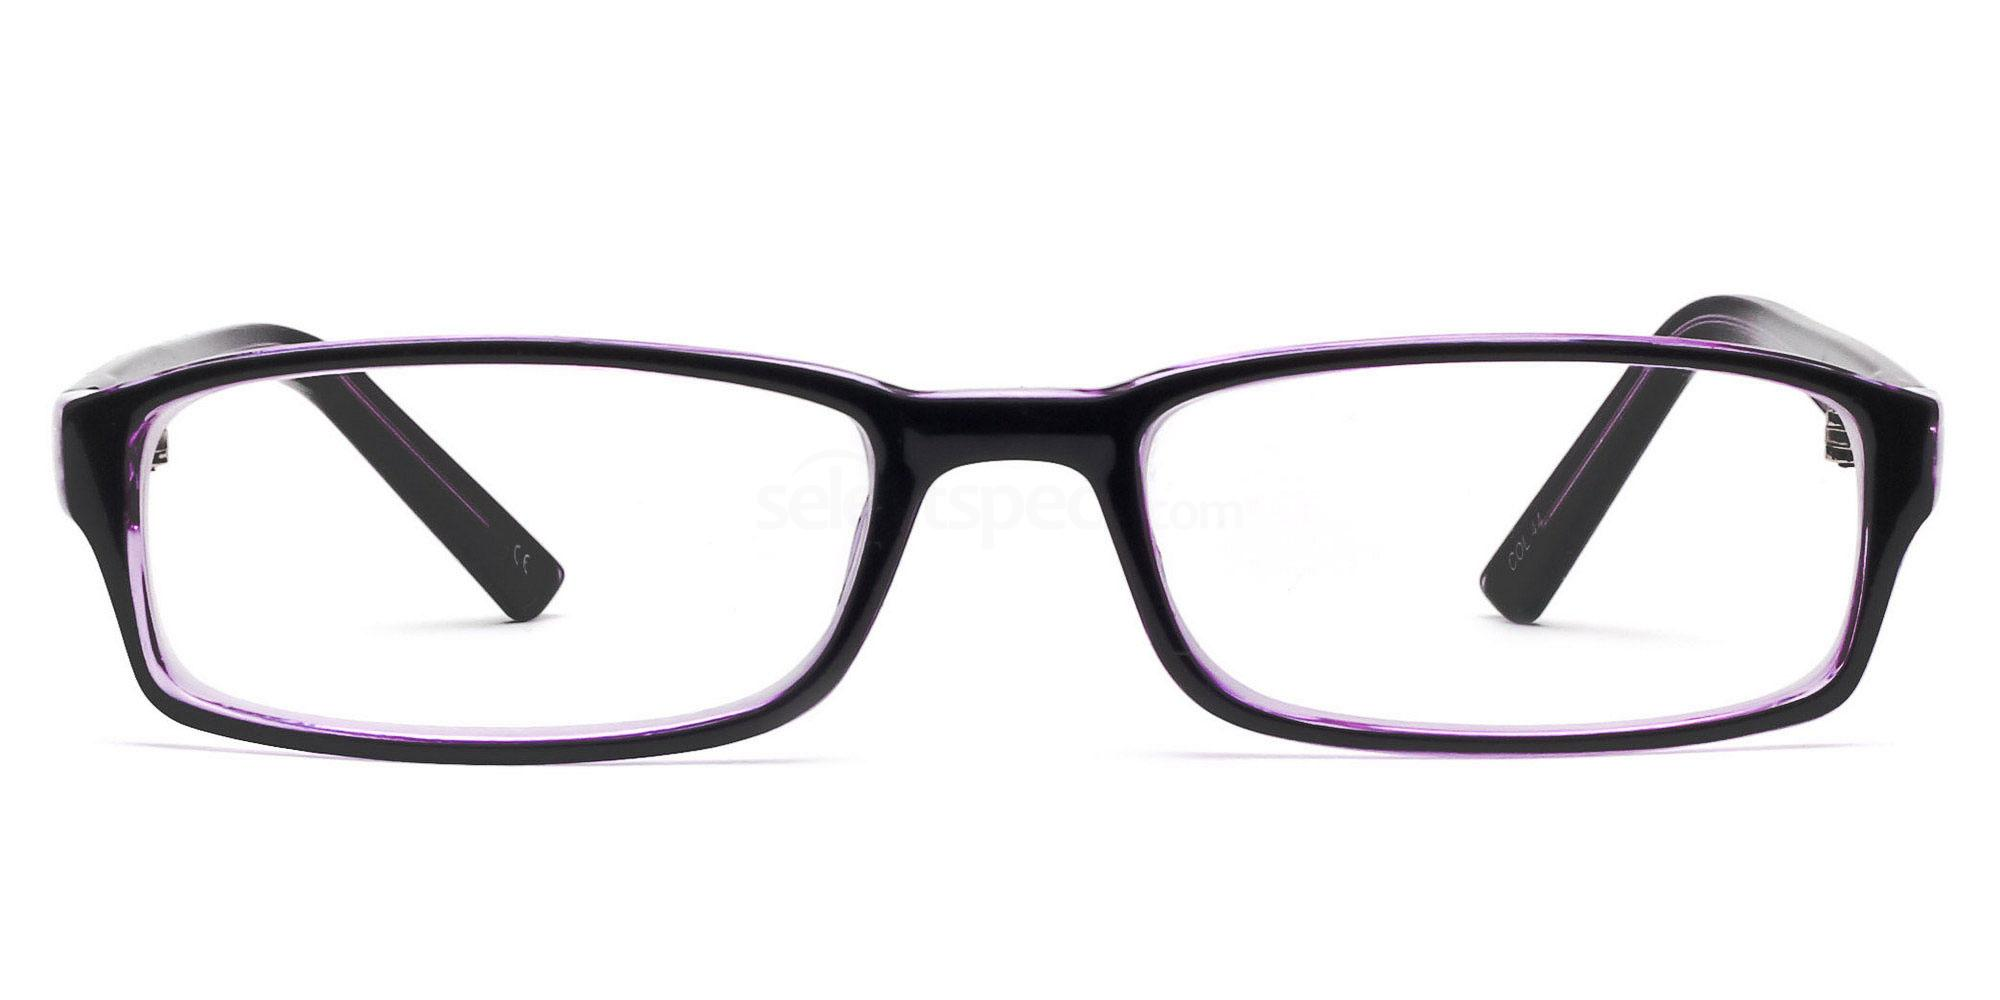 COL.44 2264 - Purple and Black Glasses, Savannah